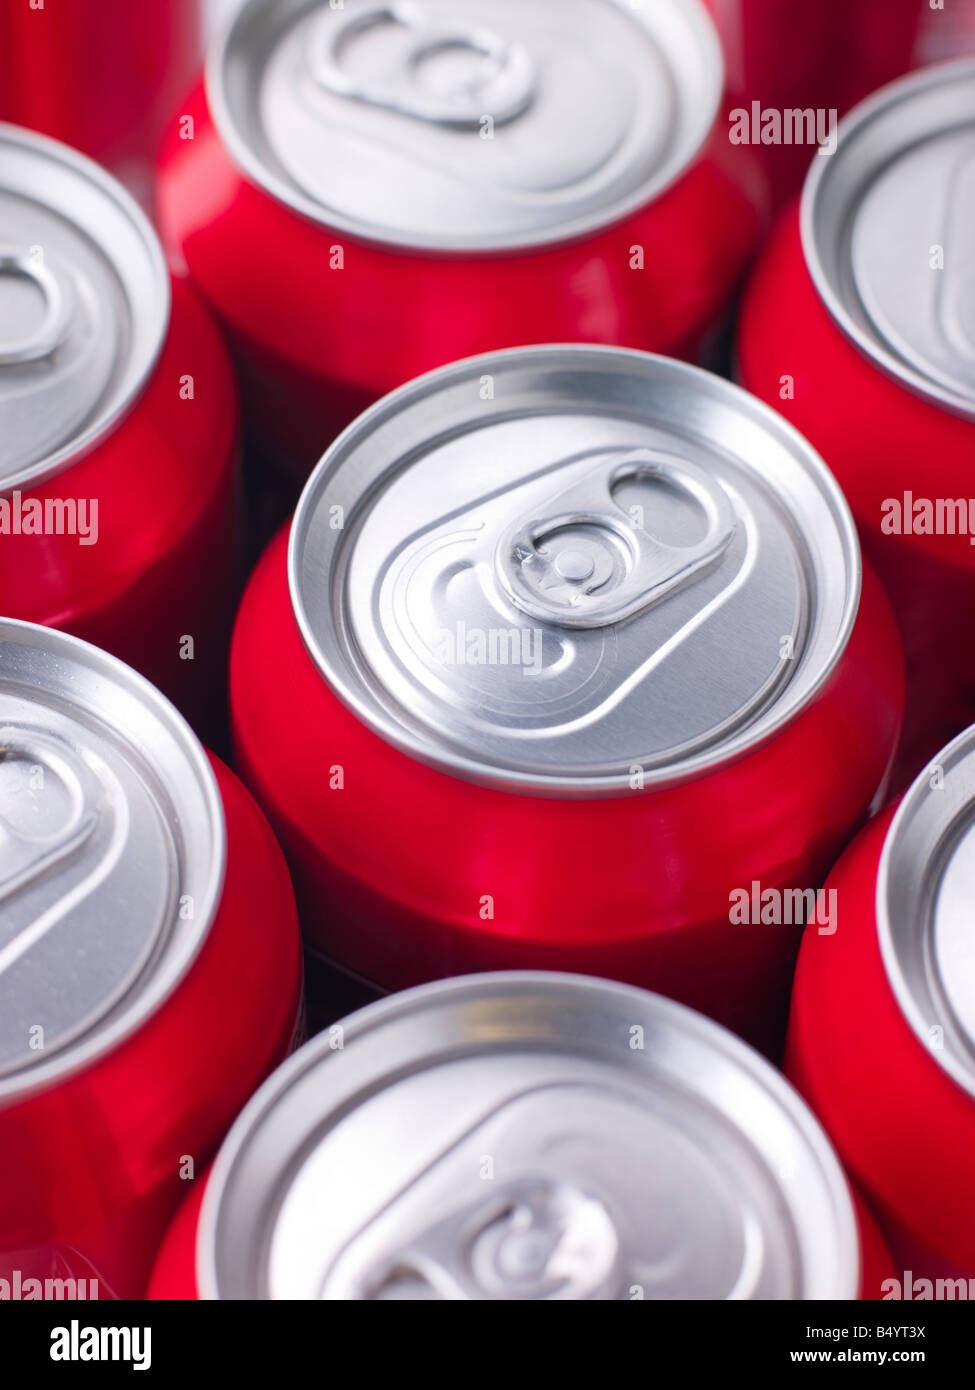 Red Cola Cans - Stock Image